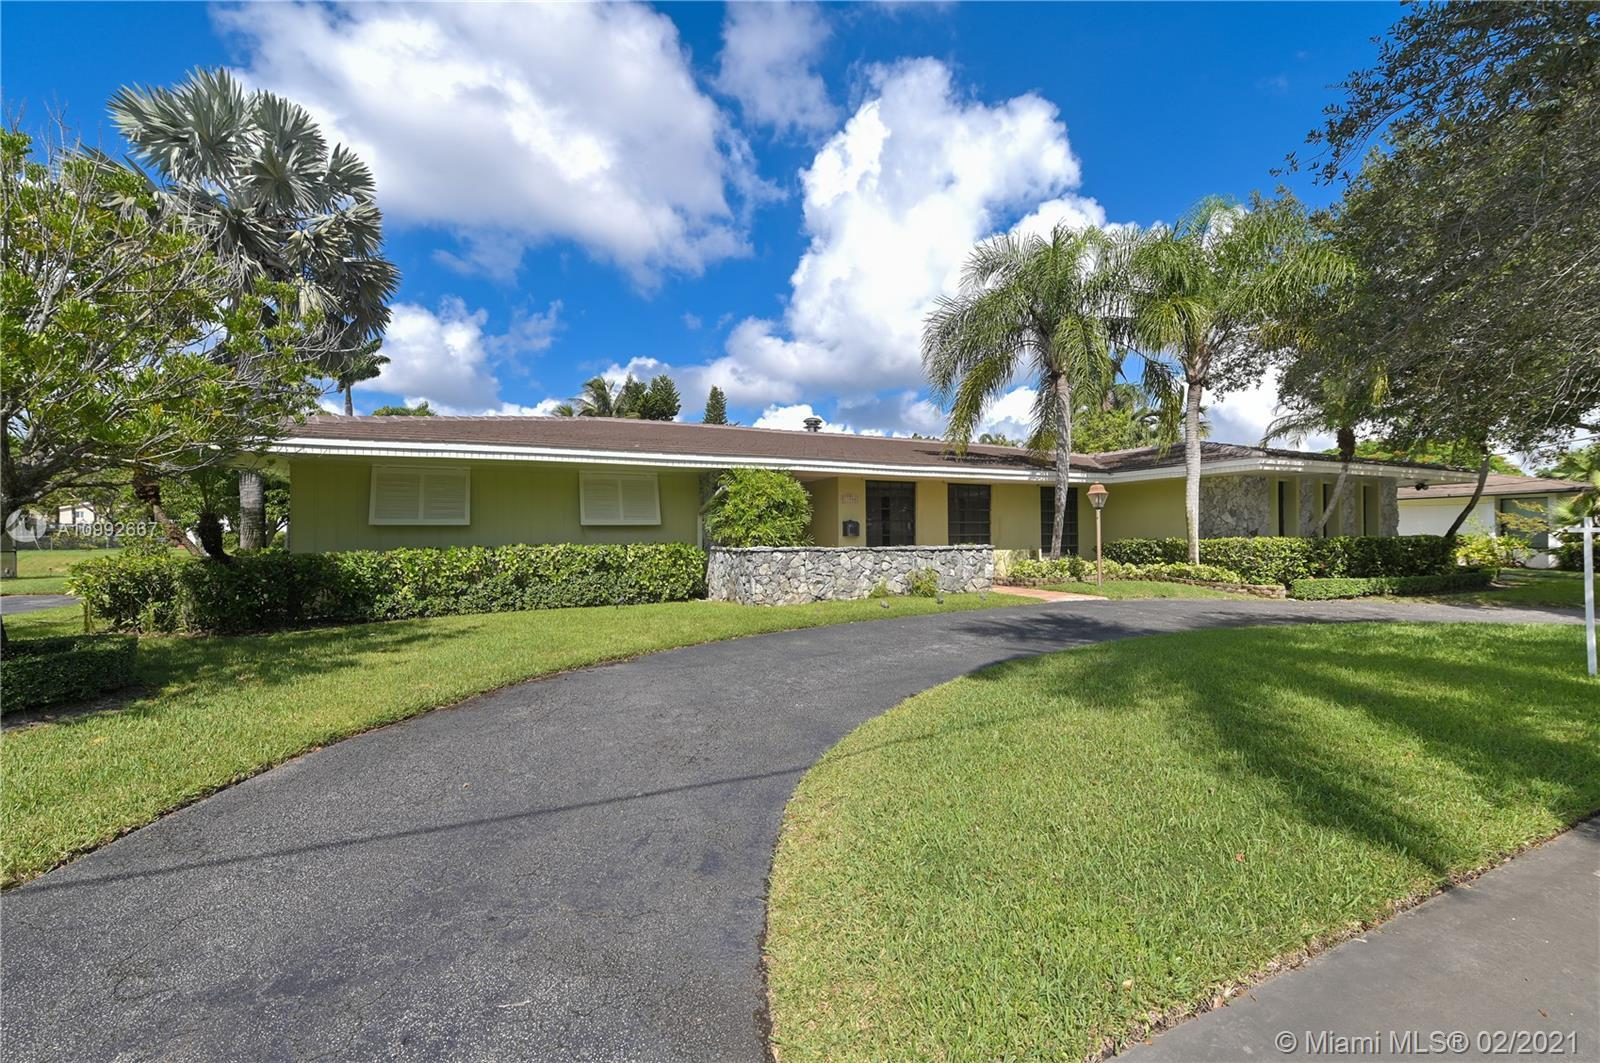 Stunning and spacious 4 BR, 2.5 bath waterfront pool home in the heart of Pinecrest. Primary feature